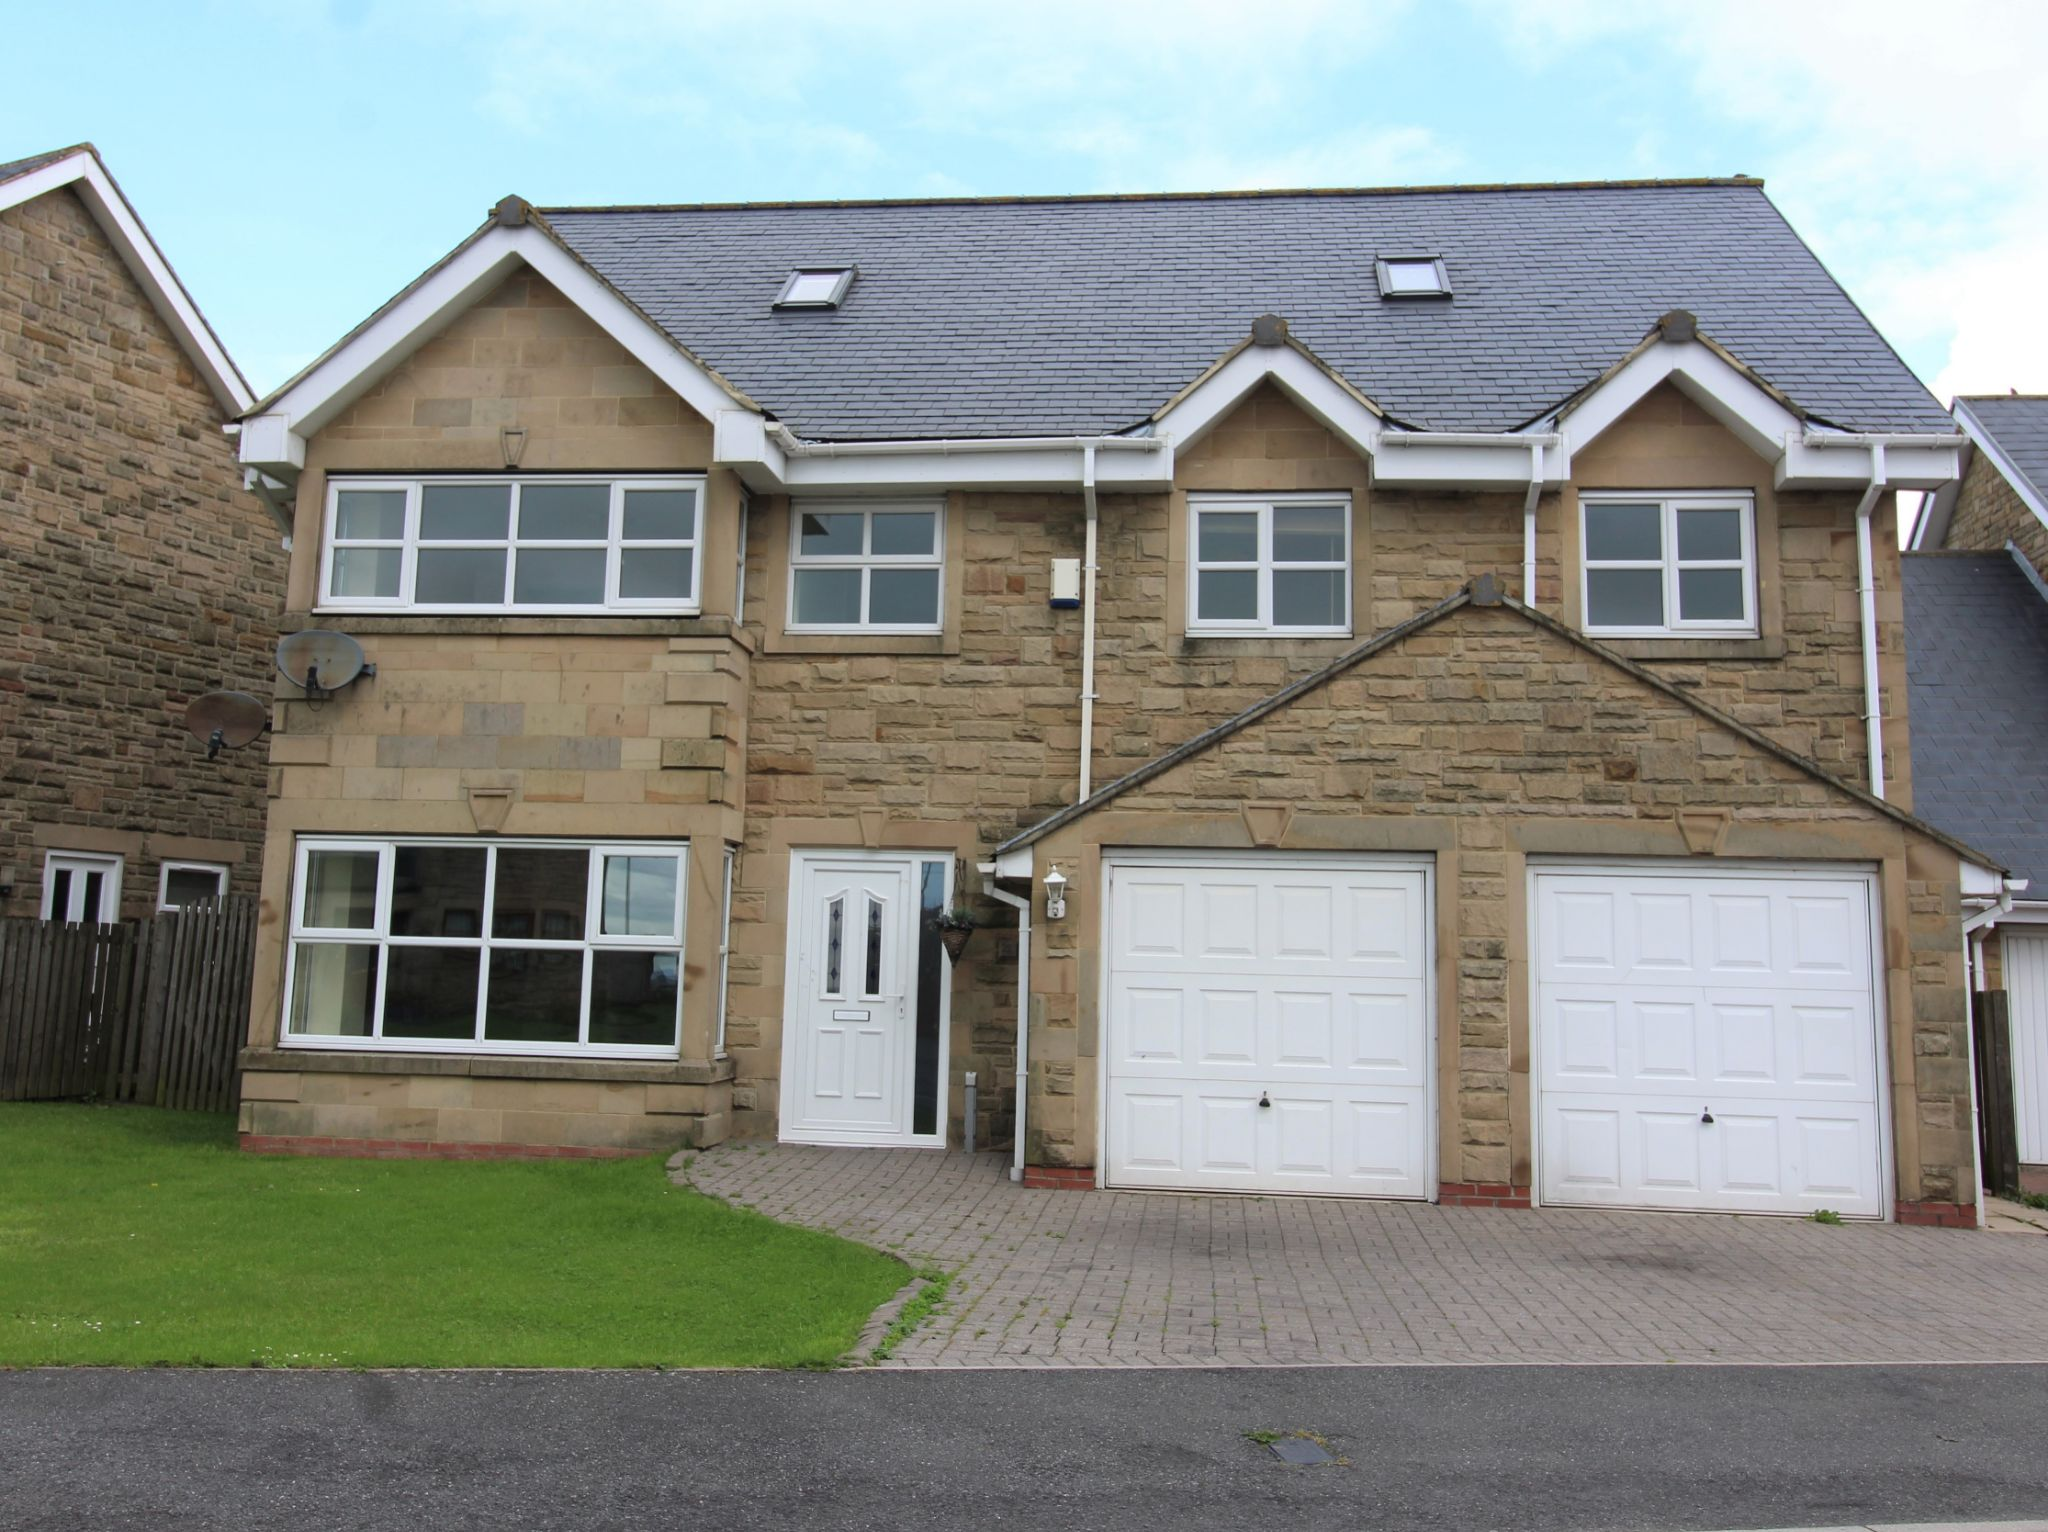 7 bedroom detached house SSTC in Sunniside - Photograph 1.